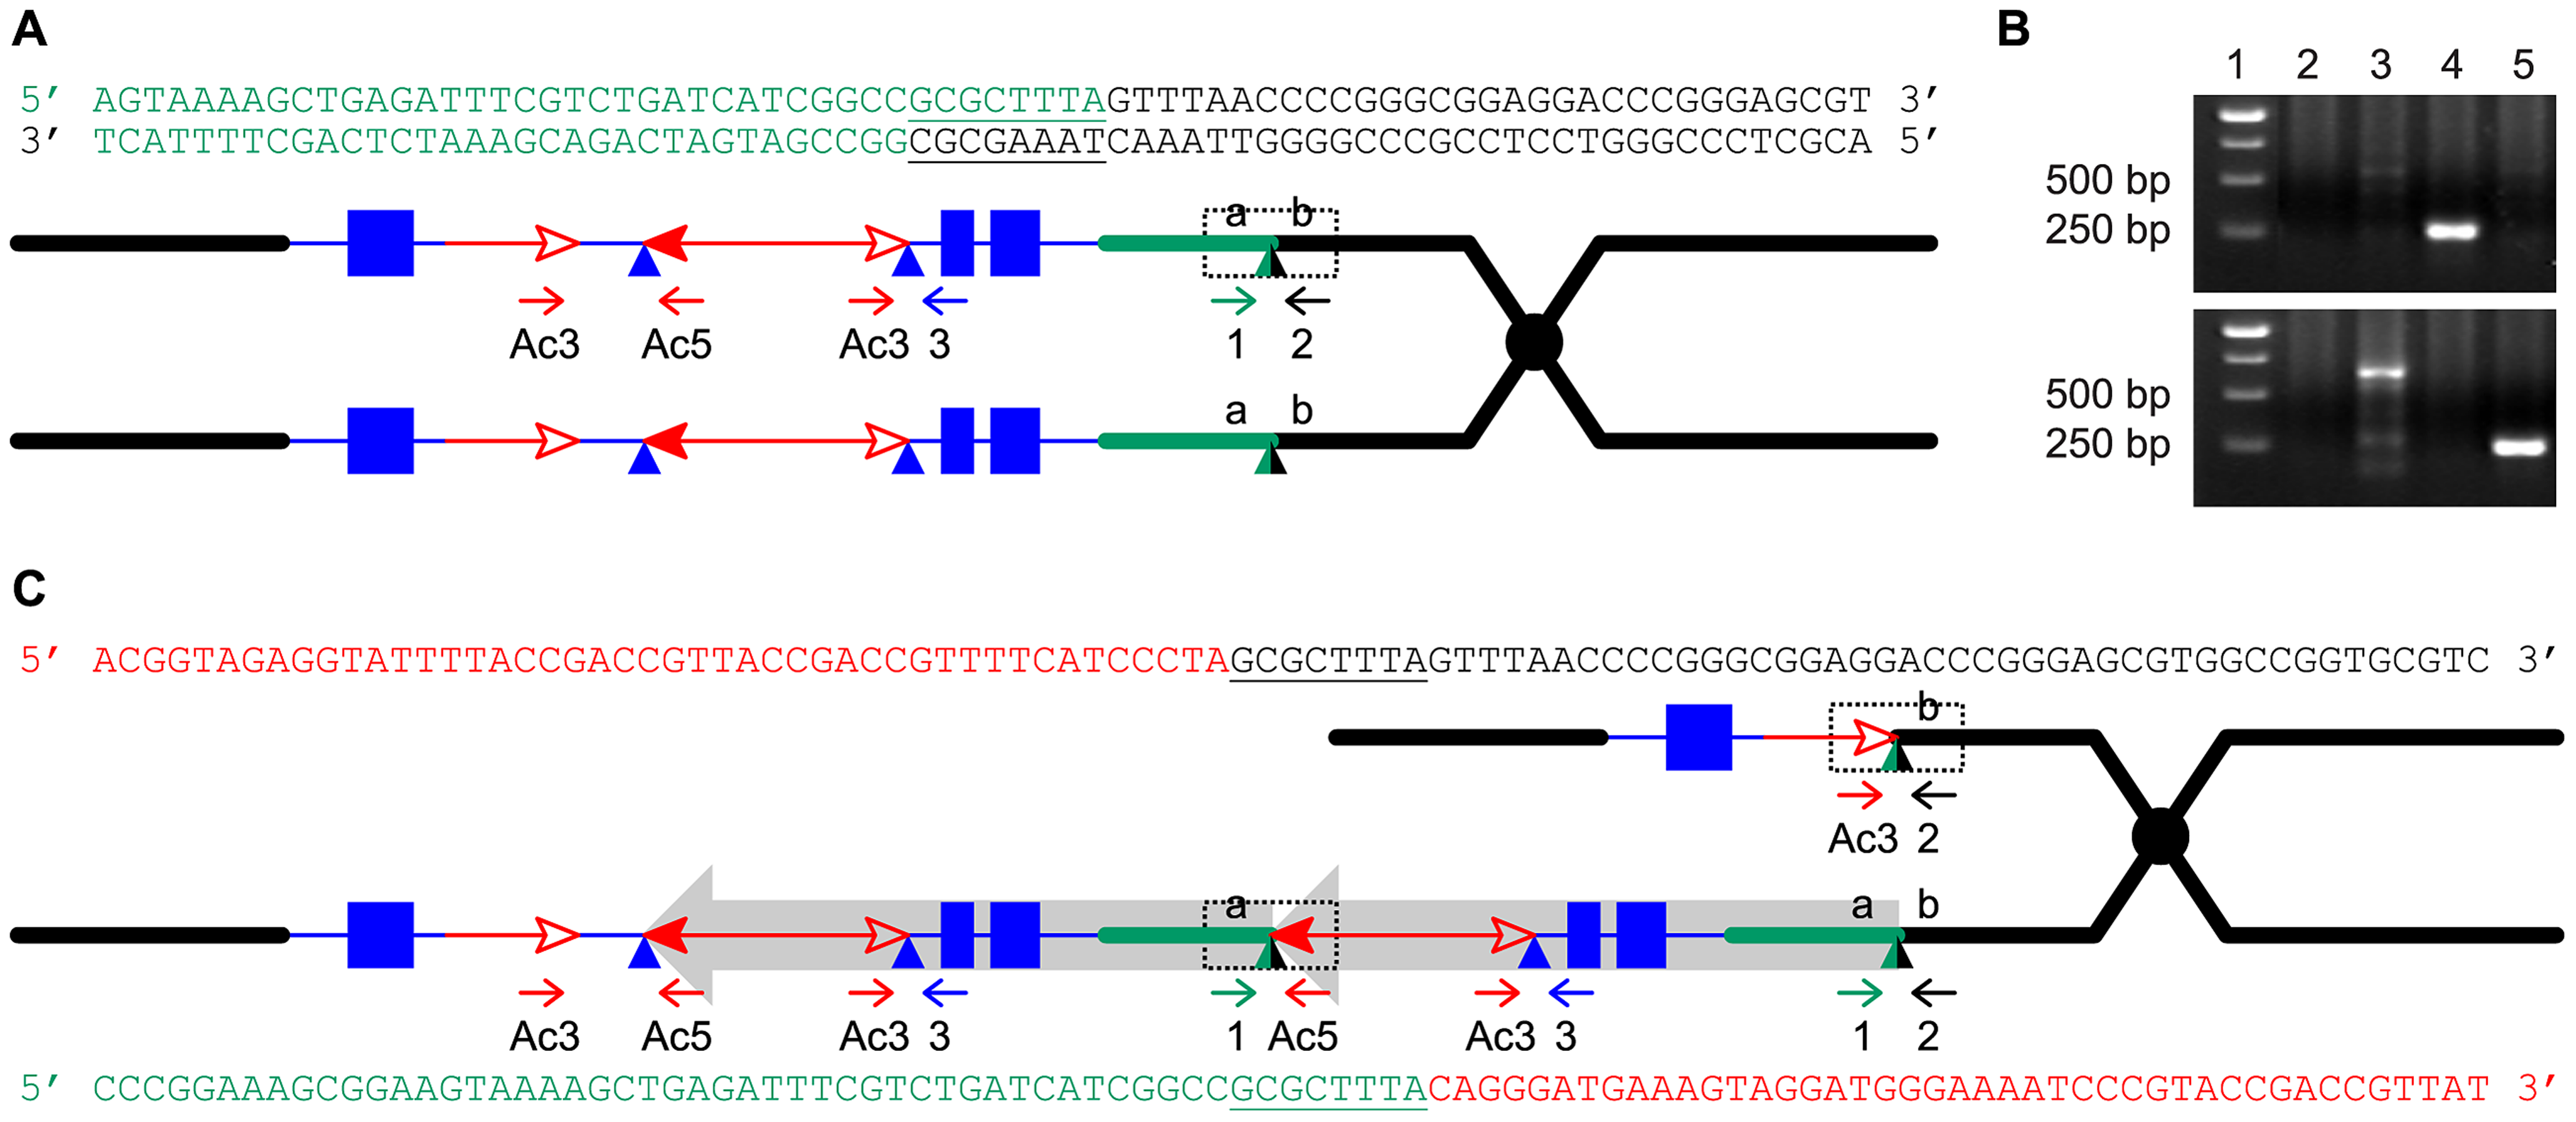 Breakpoint sequences of reciprocal duplication/deletion alleles <i>P1-rr-T1</i> and <i>p1-ww-T1</i> generated by Reversed Ends Transposition.